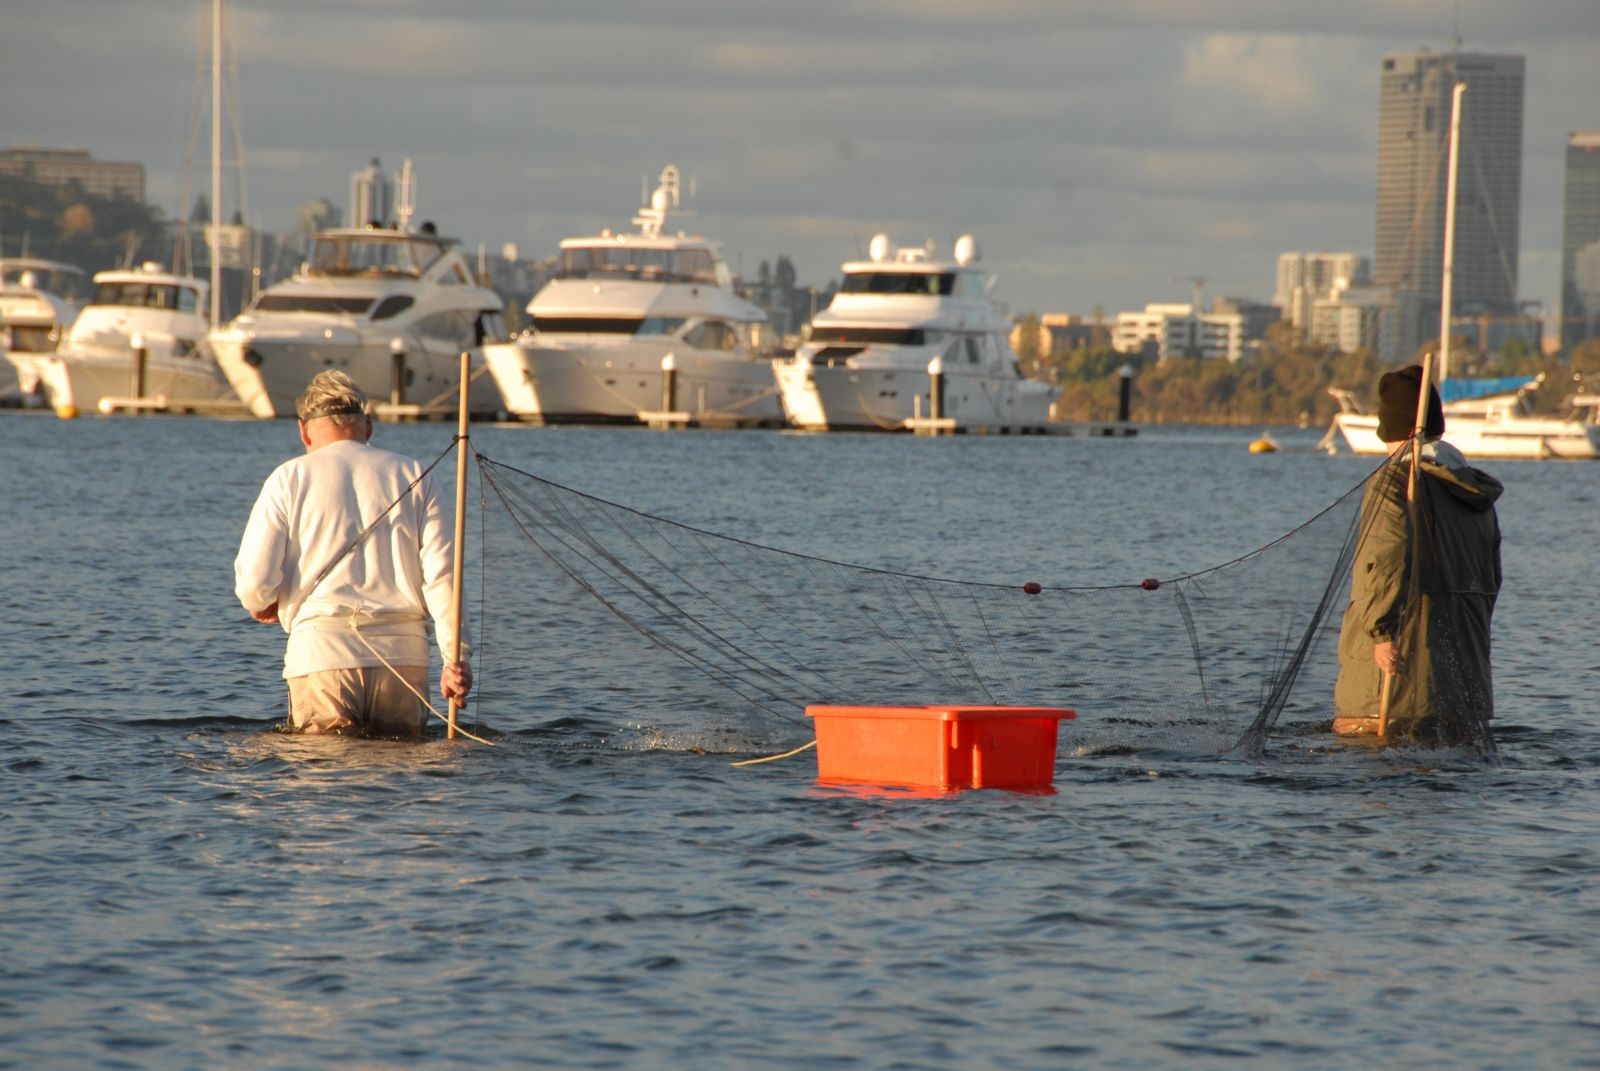 Catching prawns in the Swan River